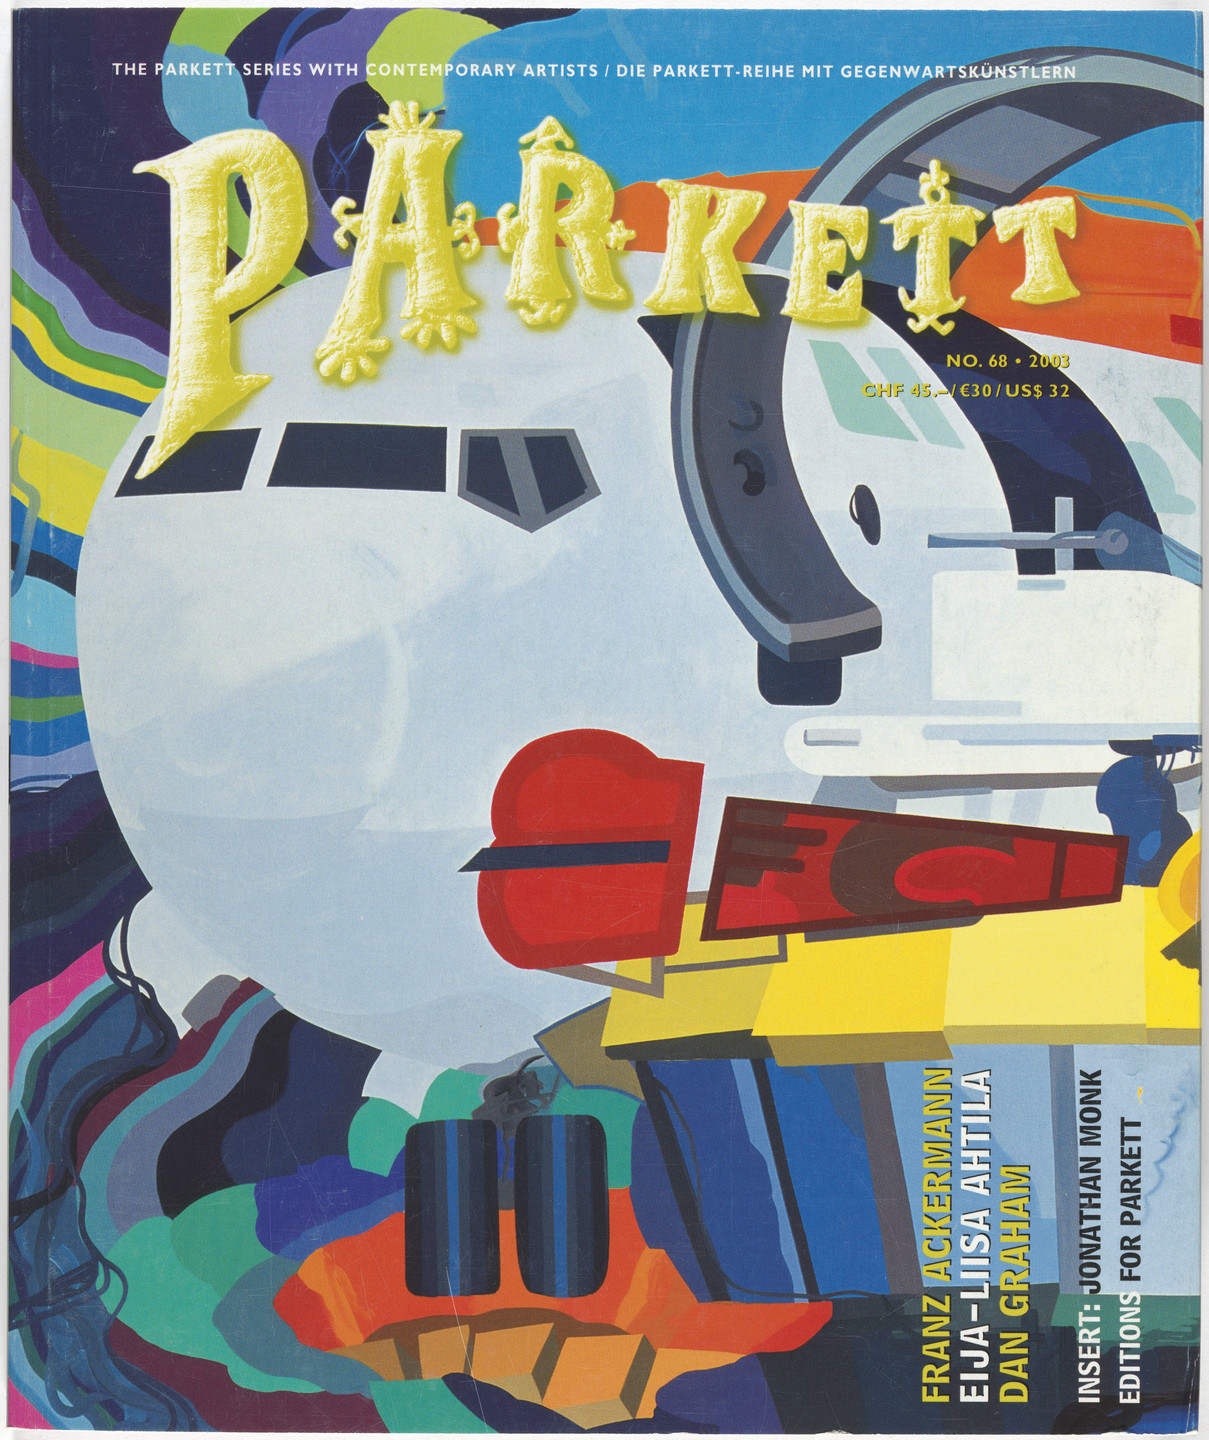 Franz Ackermann, Eija-Liisa Attilah, Dan Graham, Jonathan Monk, Fiona Banner, Various Artists. Parkett no. 68. 2003